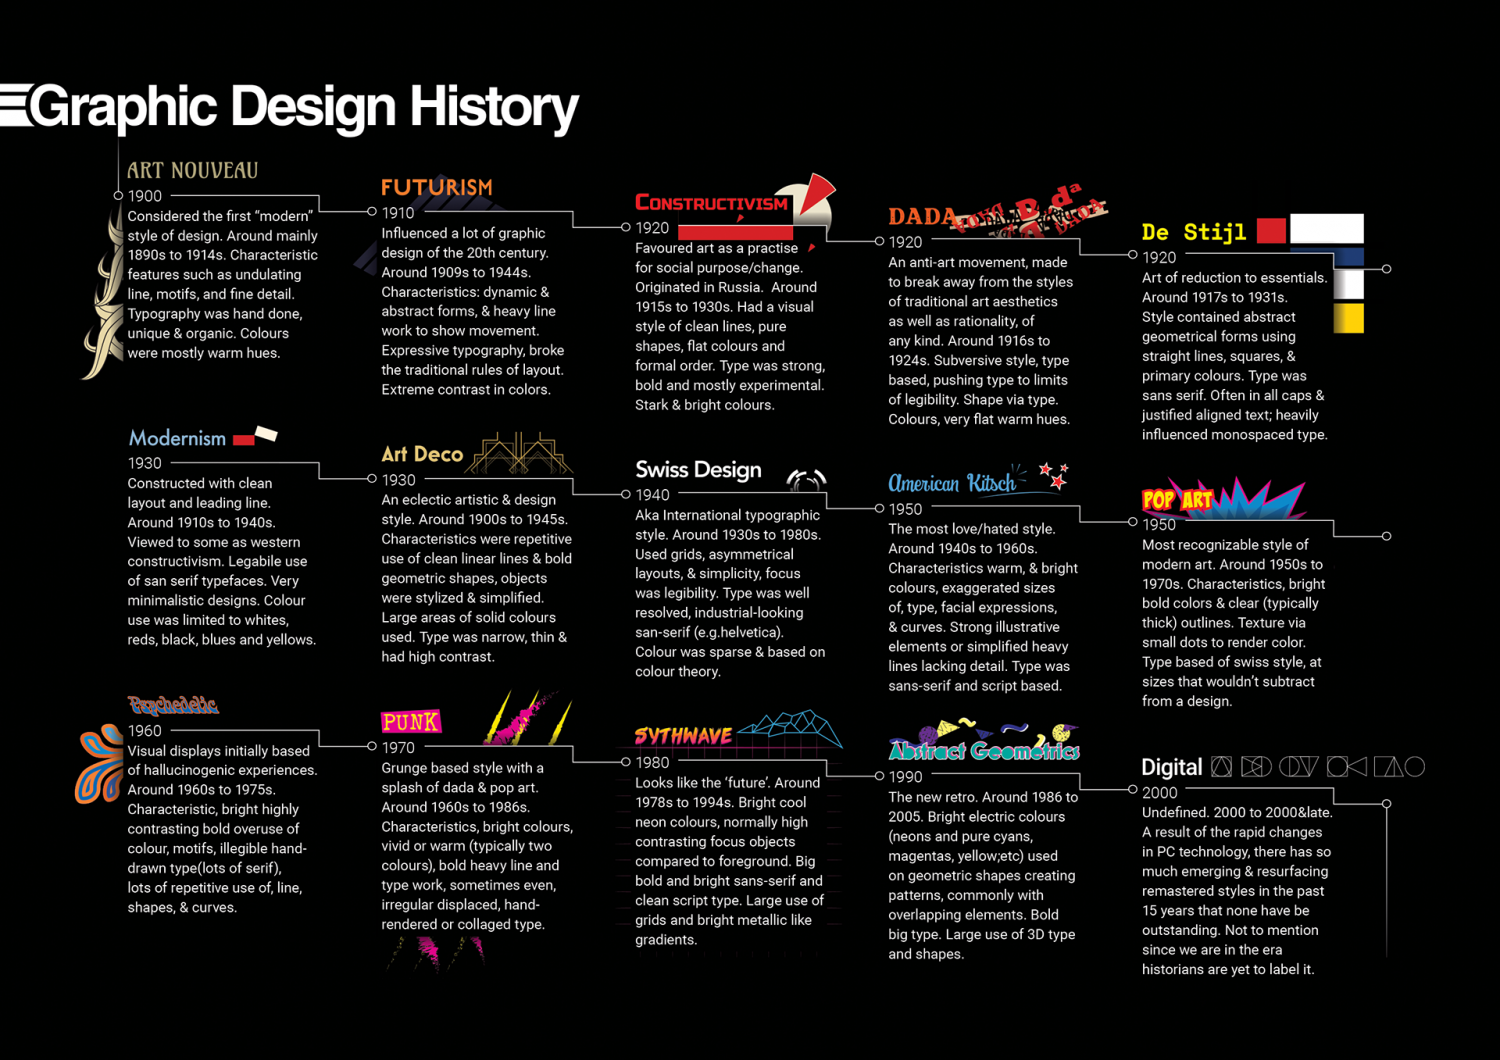 Graphic Design History Poster - PosterSpy